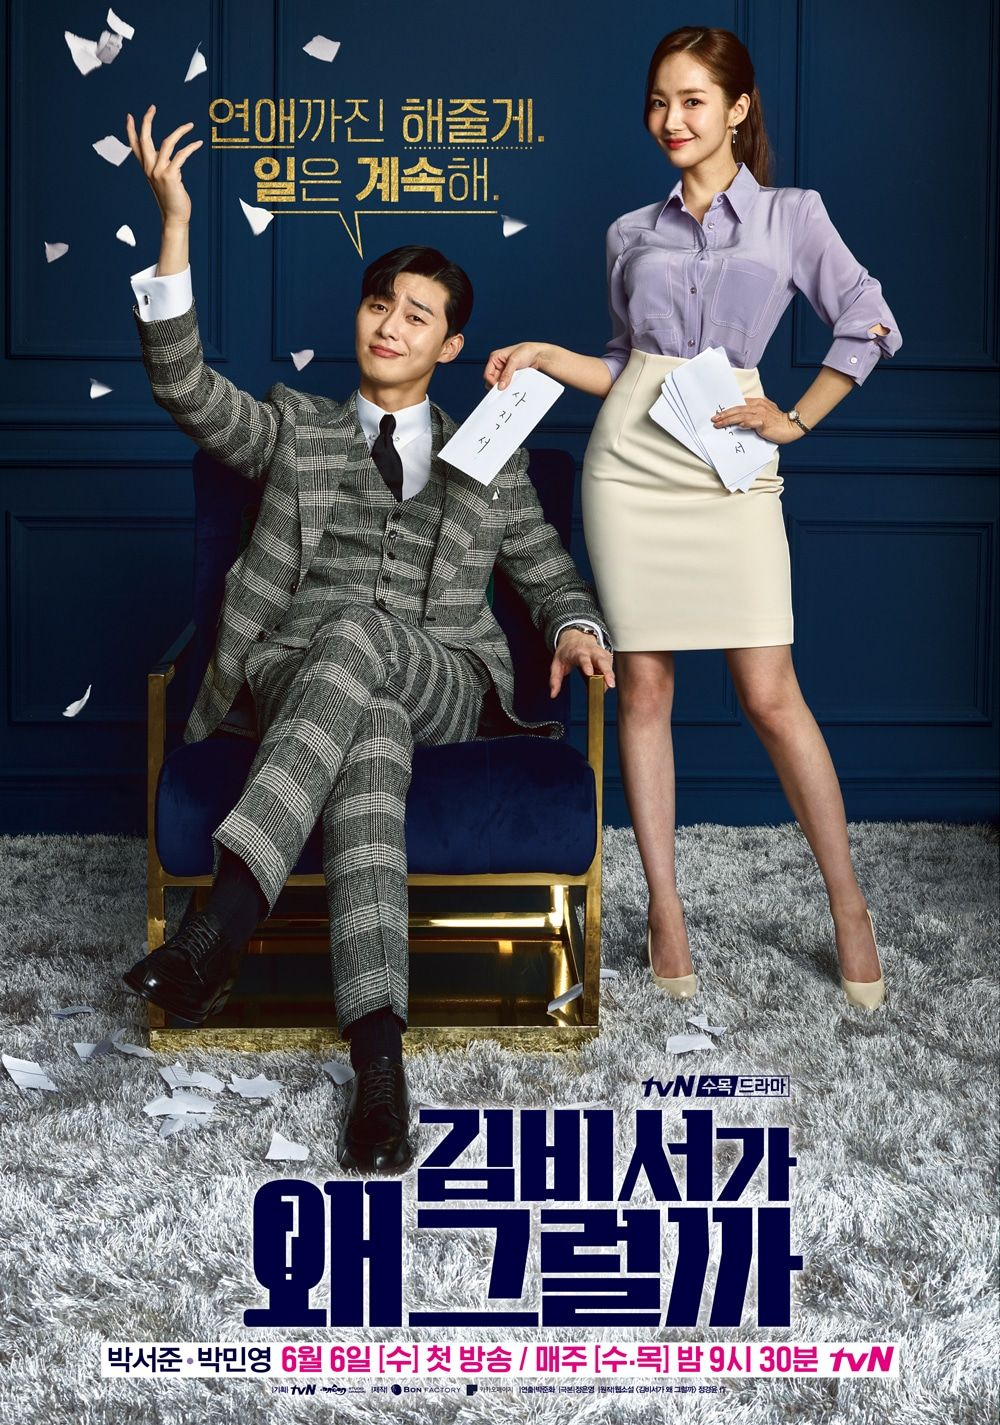 Sinopsis What's Wrong With Secretary Kim Episode 1 16